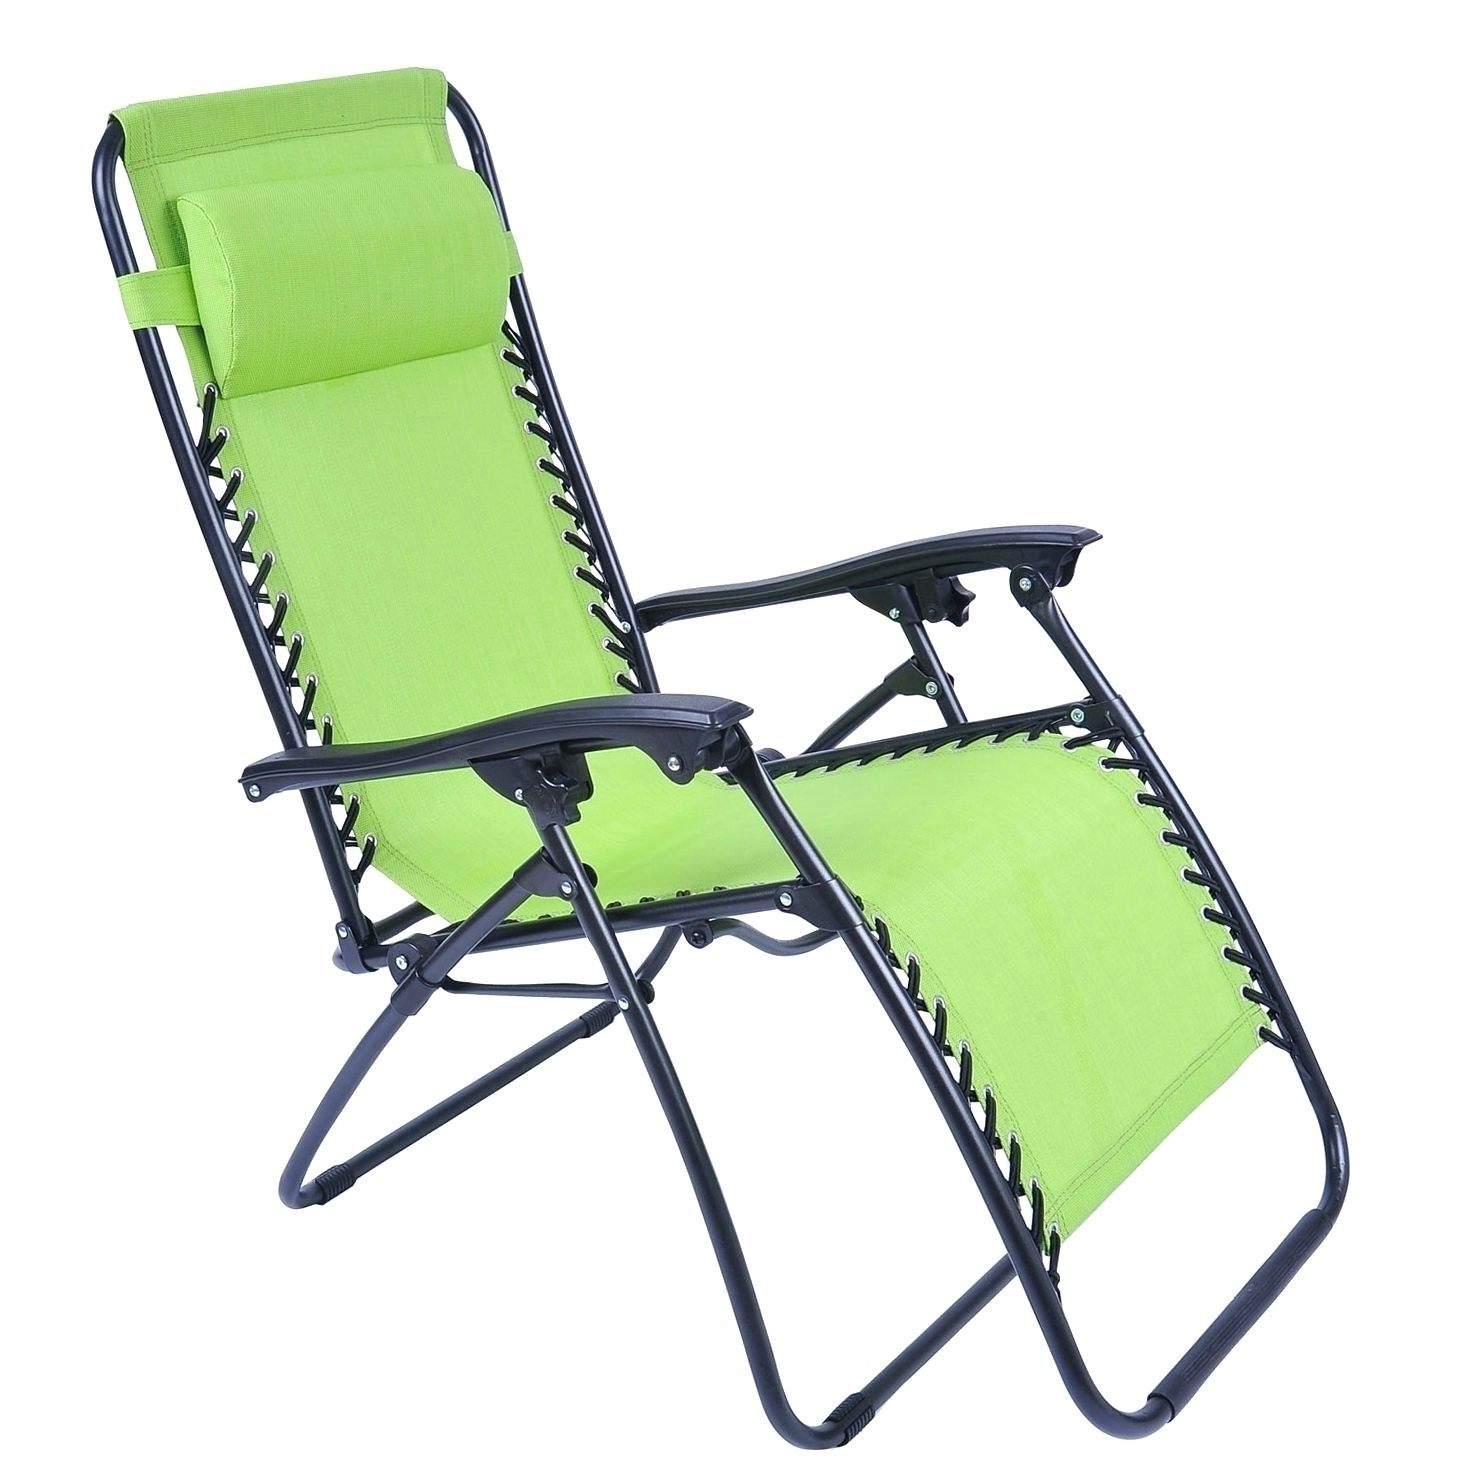 Heavy Duty Chaise Lounge Chairs Intended For Well Liked Heavy Duty Patio Lounge Chairs • Lounge Chairs Ideas (View 1 of 15)